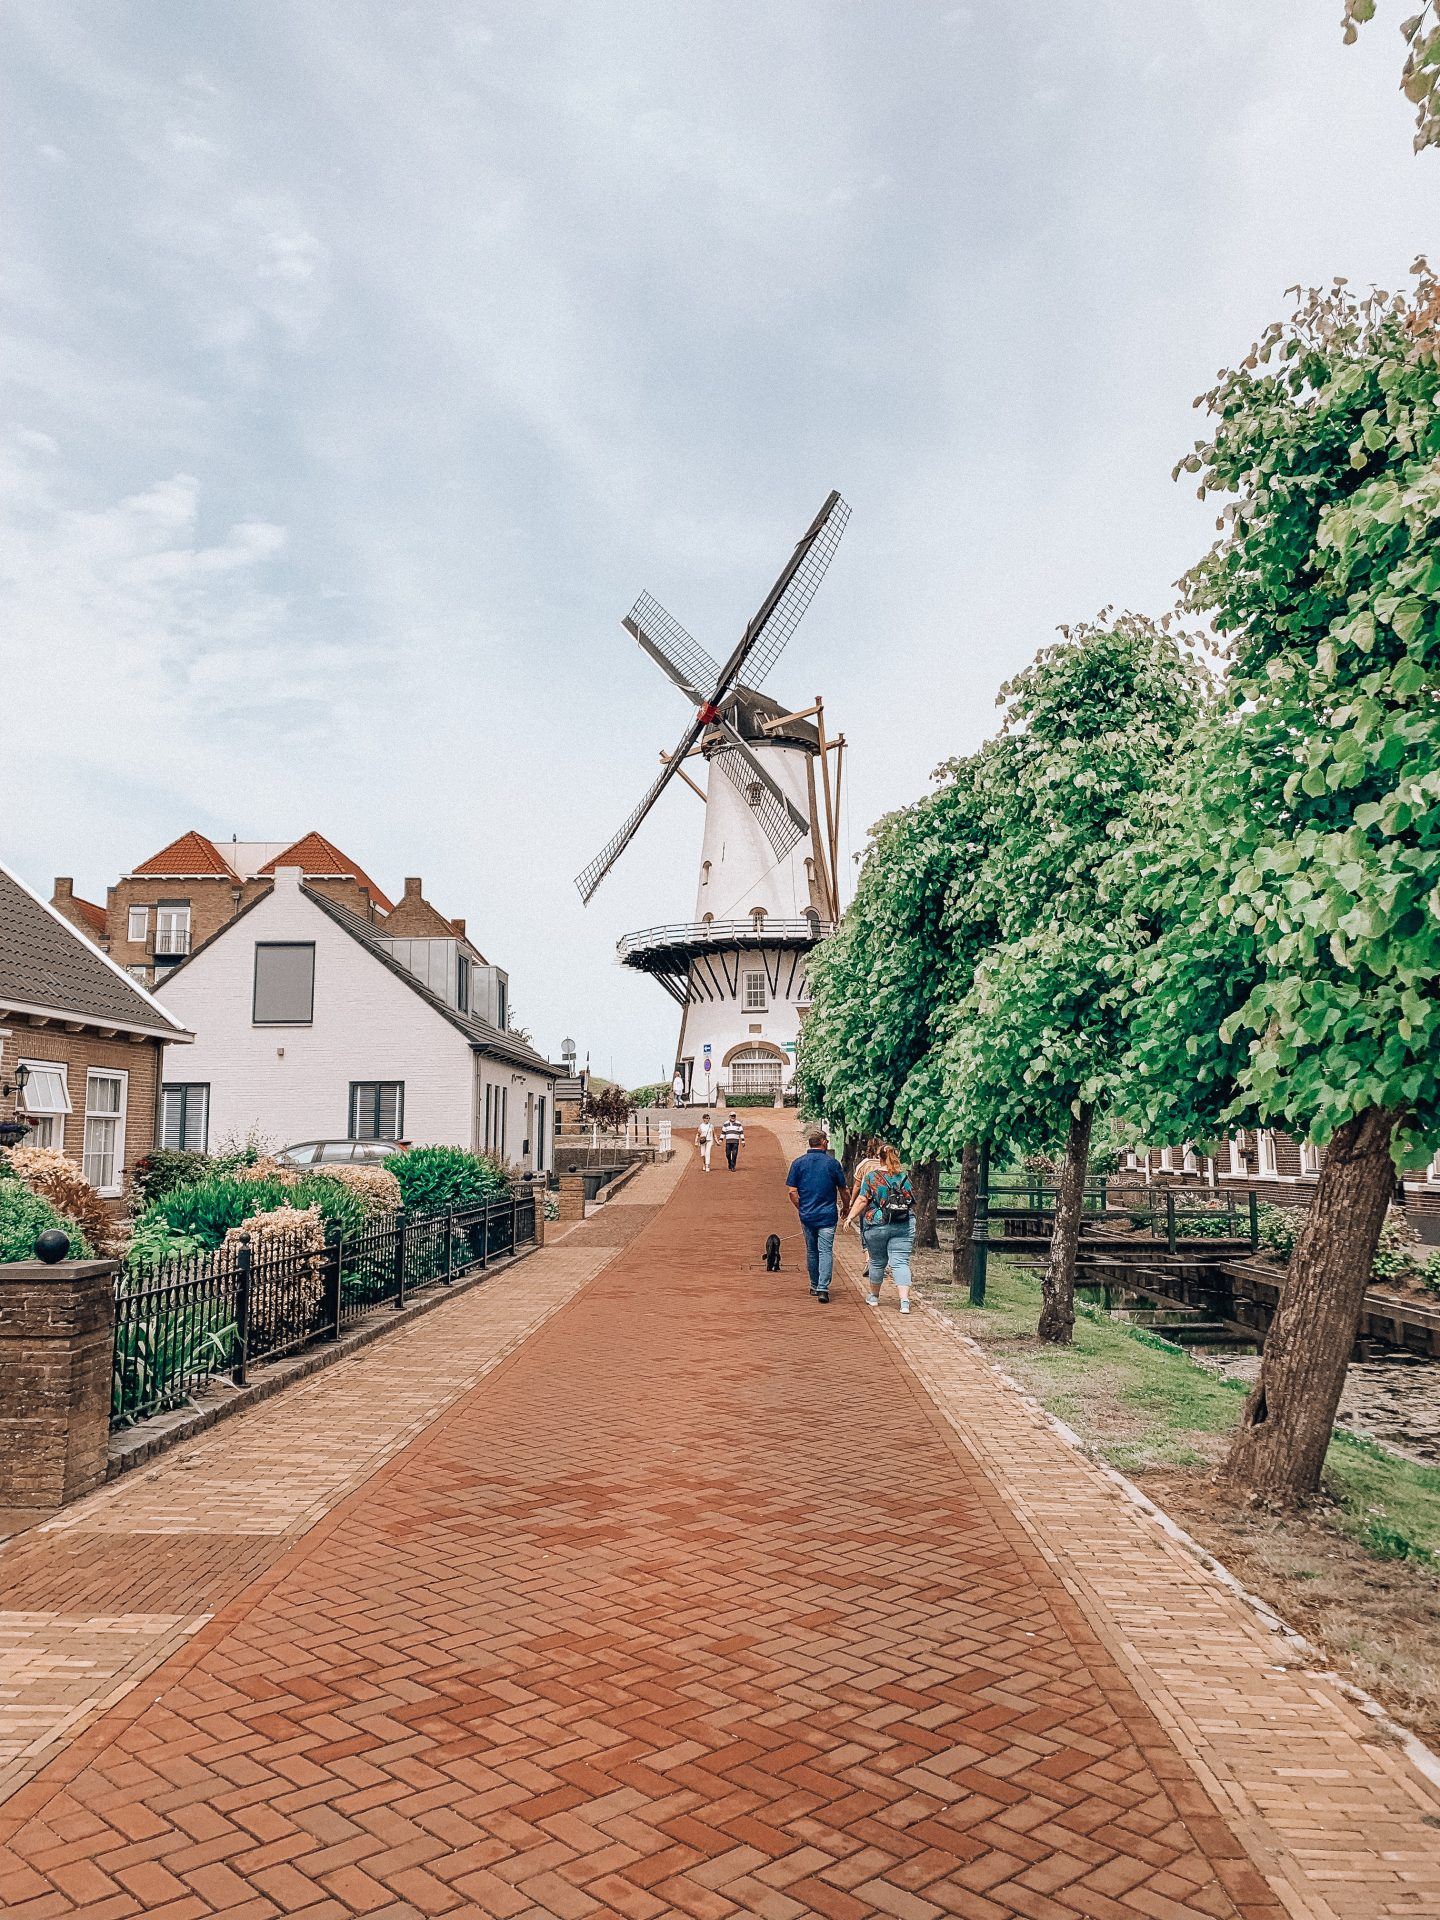 a windmill in willemstad with cute houses, trees and a blue sky